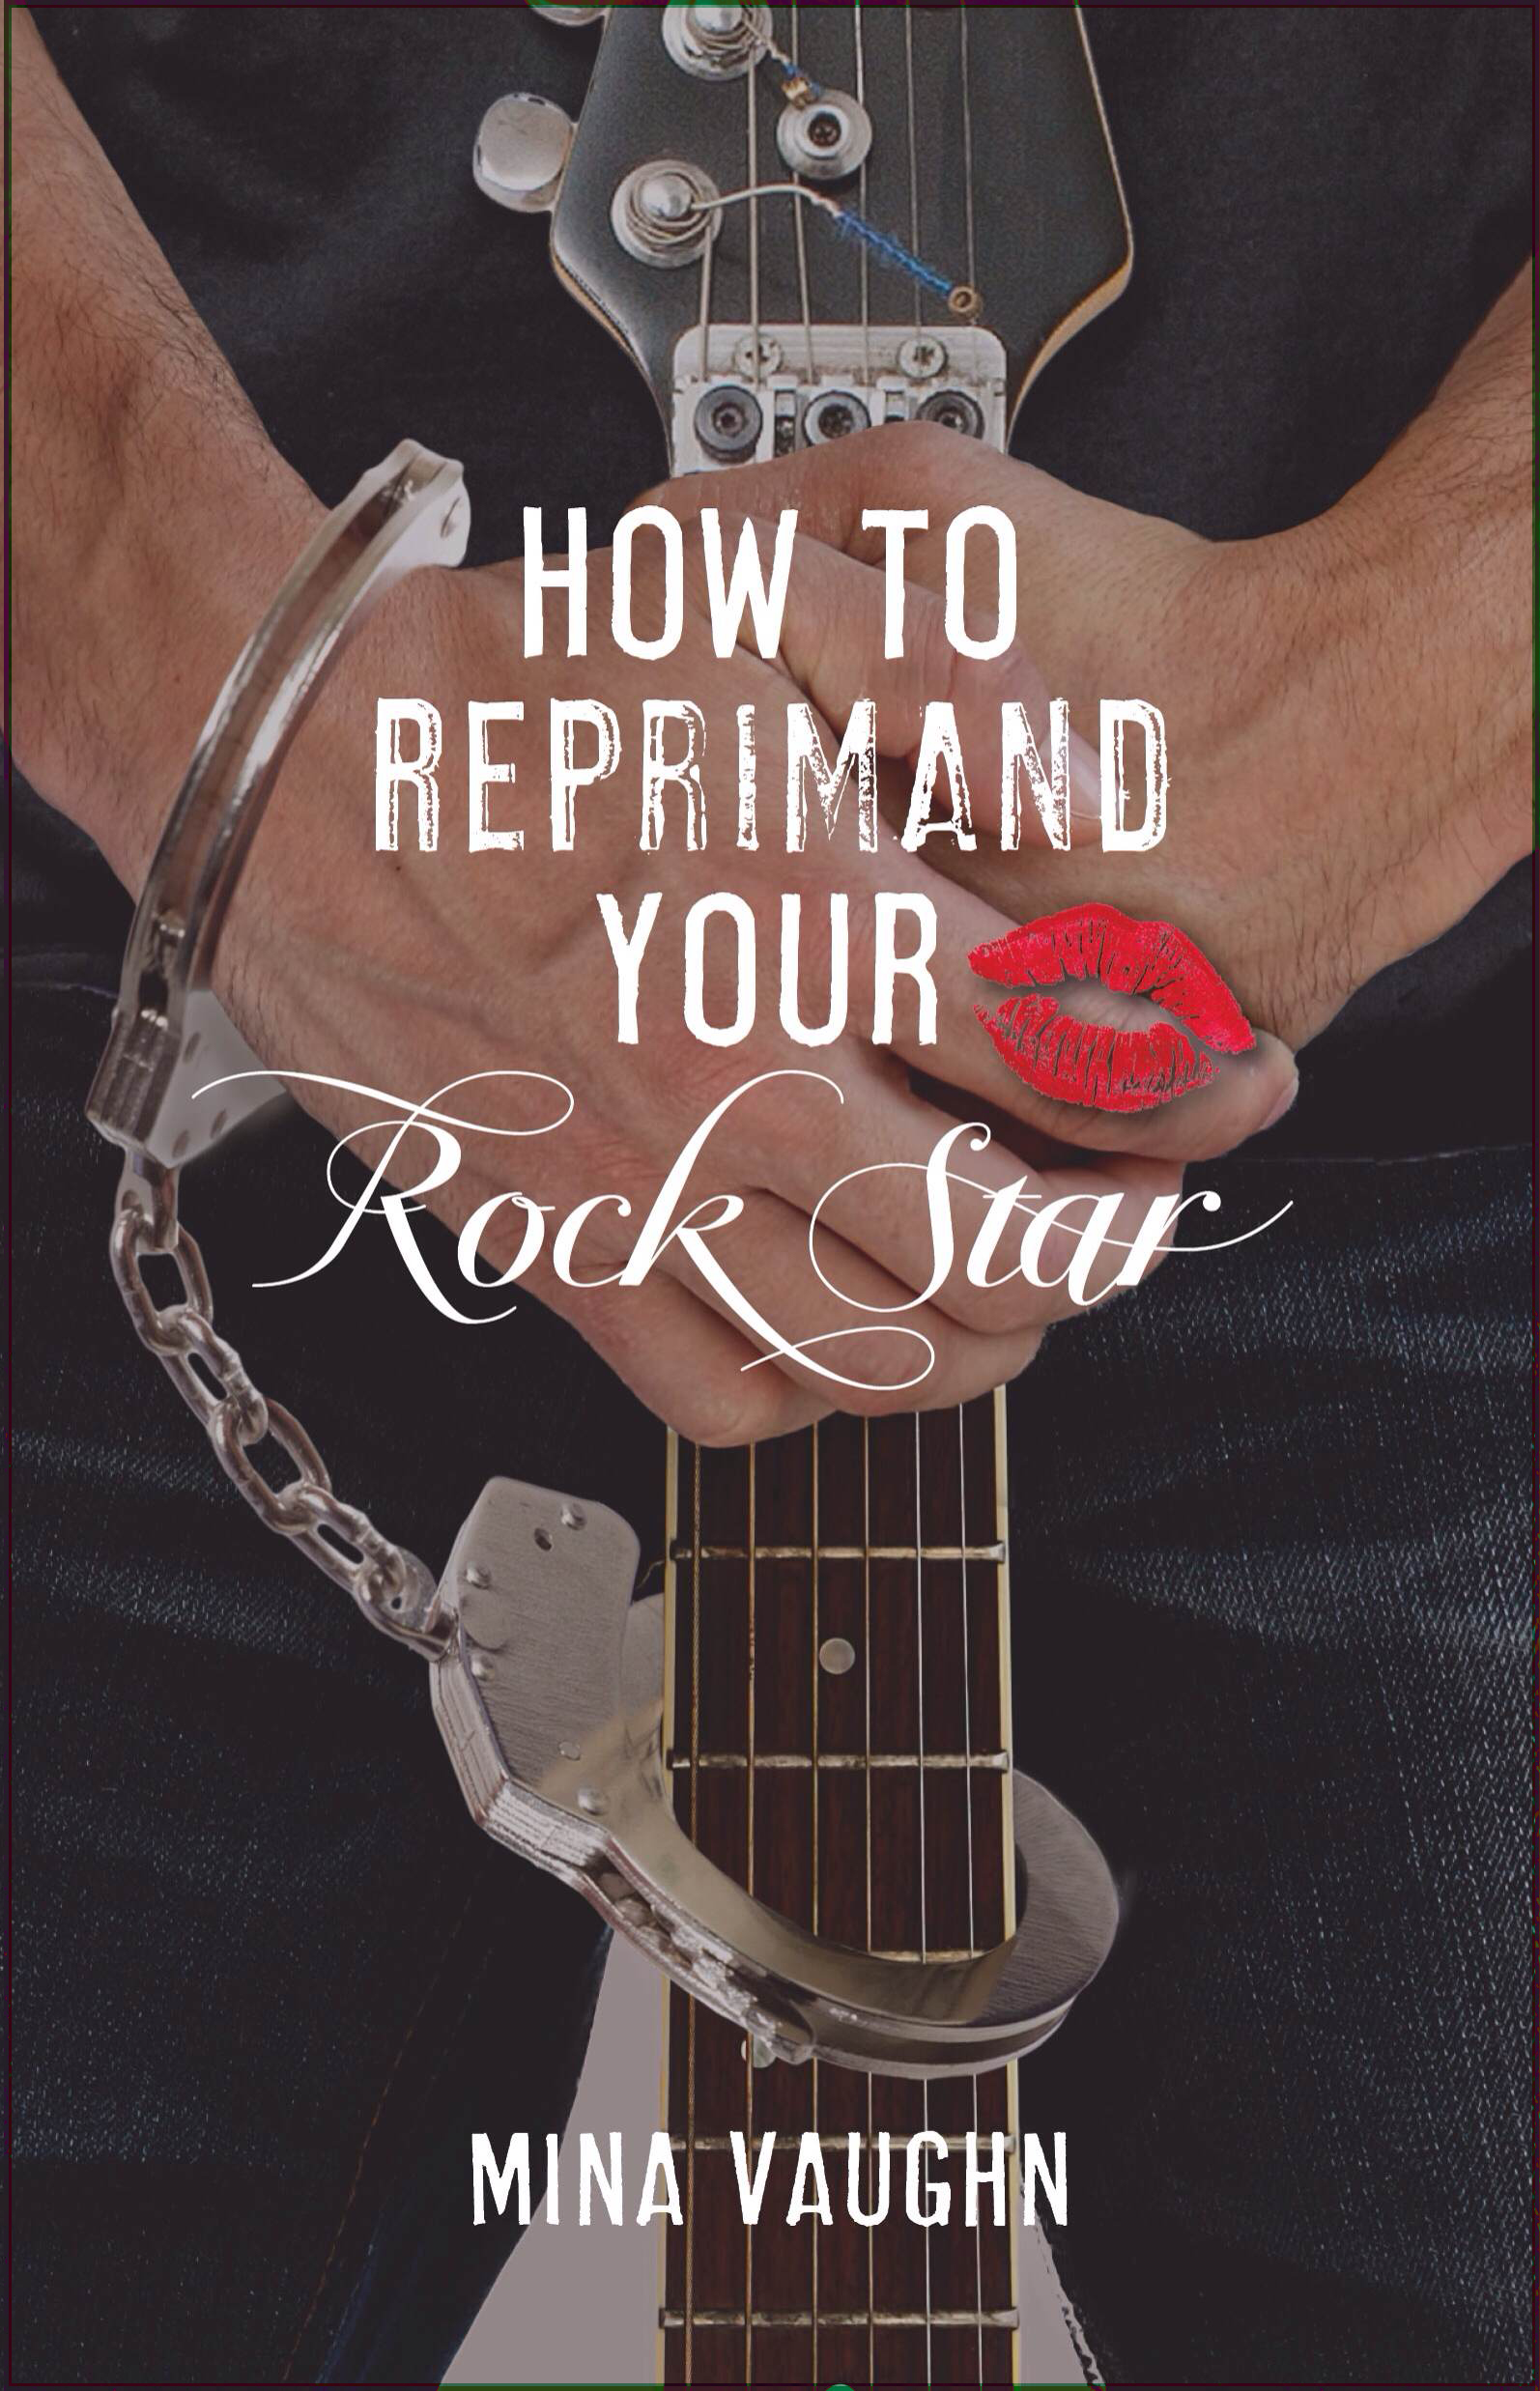 How to Reprimand your rock starb